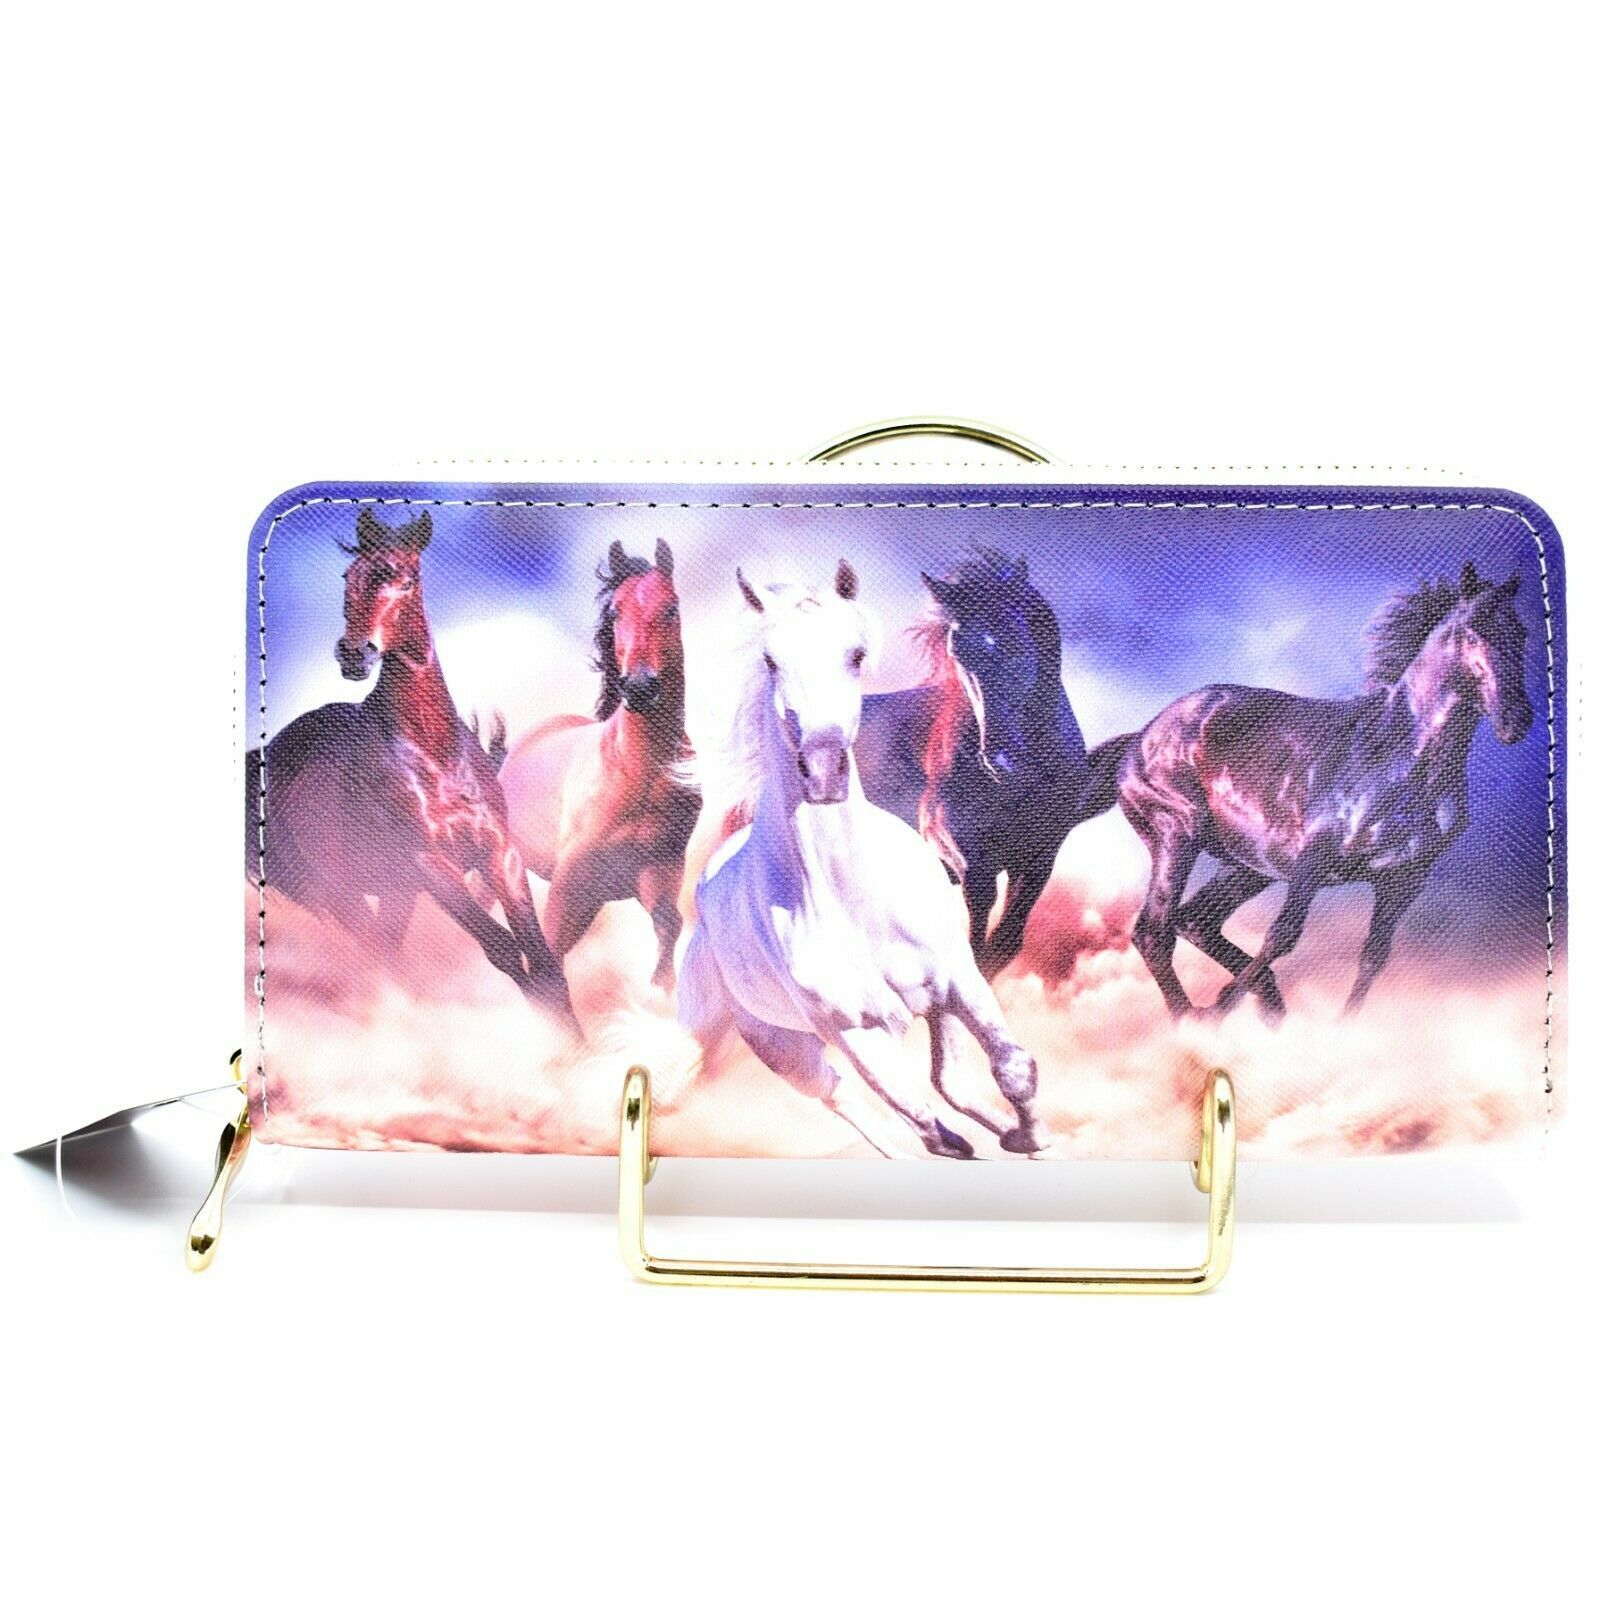 Bijorca Country Western Running Horse Herd Vinyl Clutch Wallet New with Tags